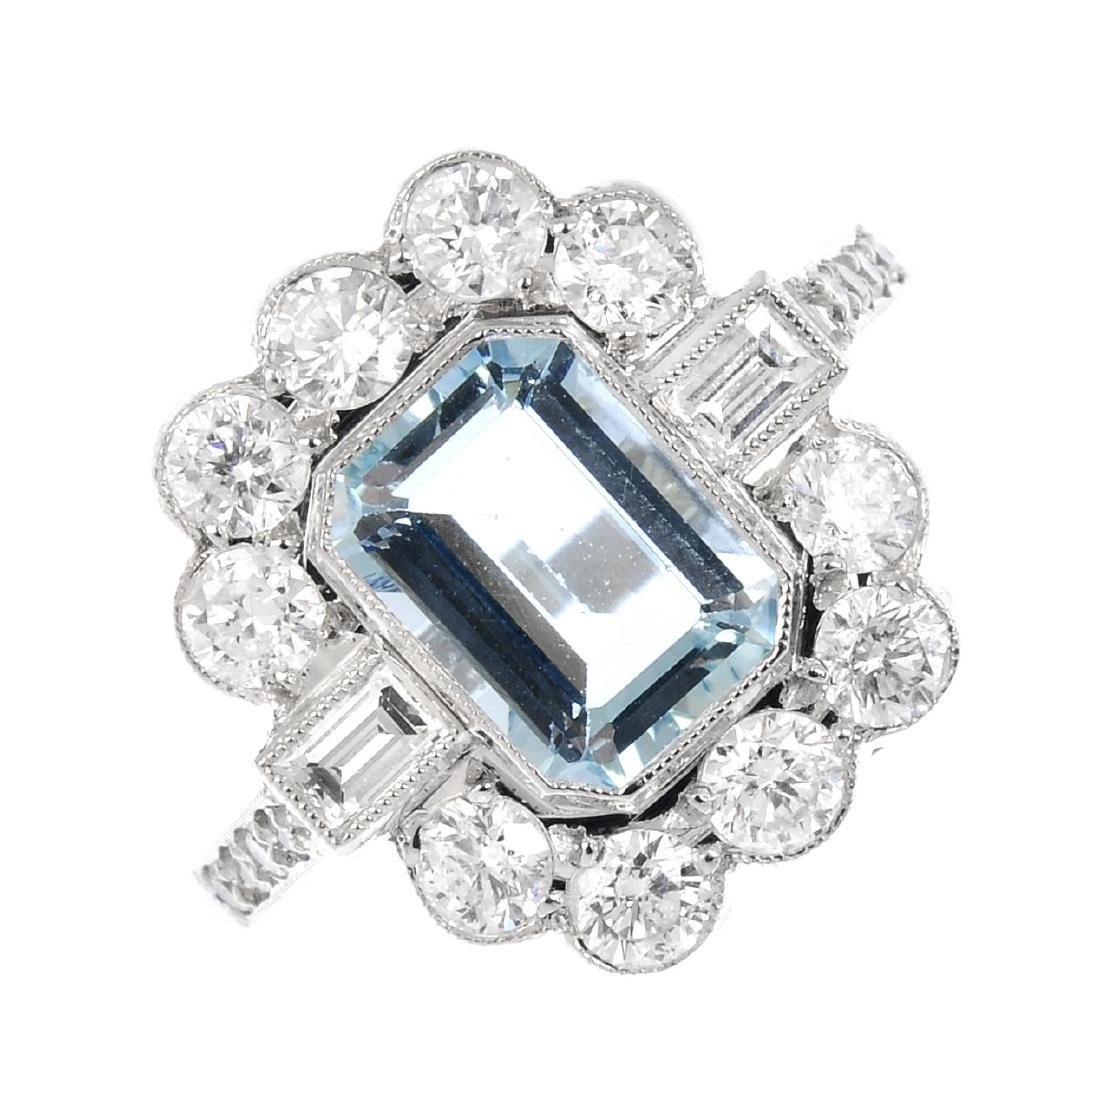 An aquamarine and diamond cluster ring. The